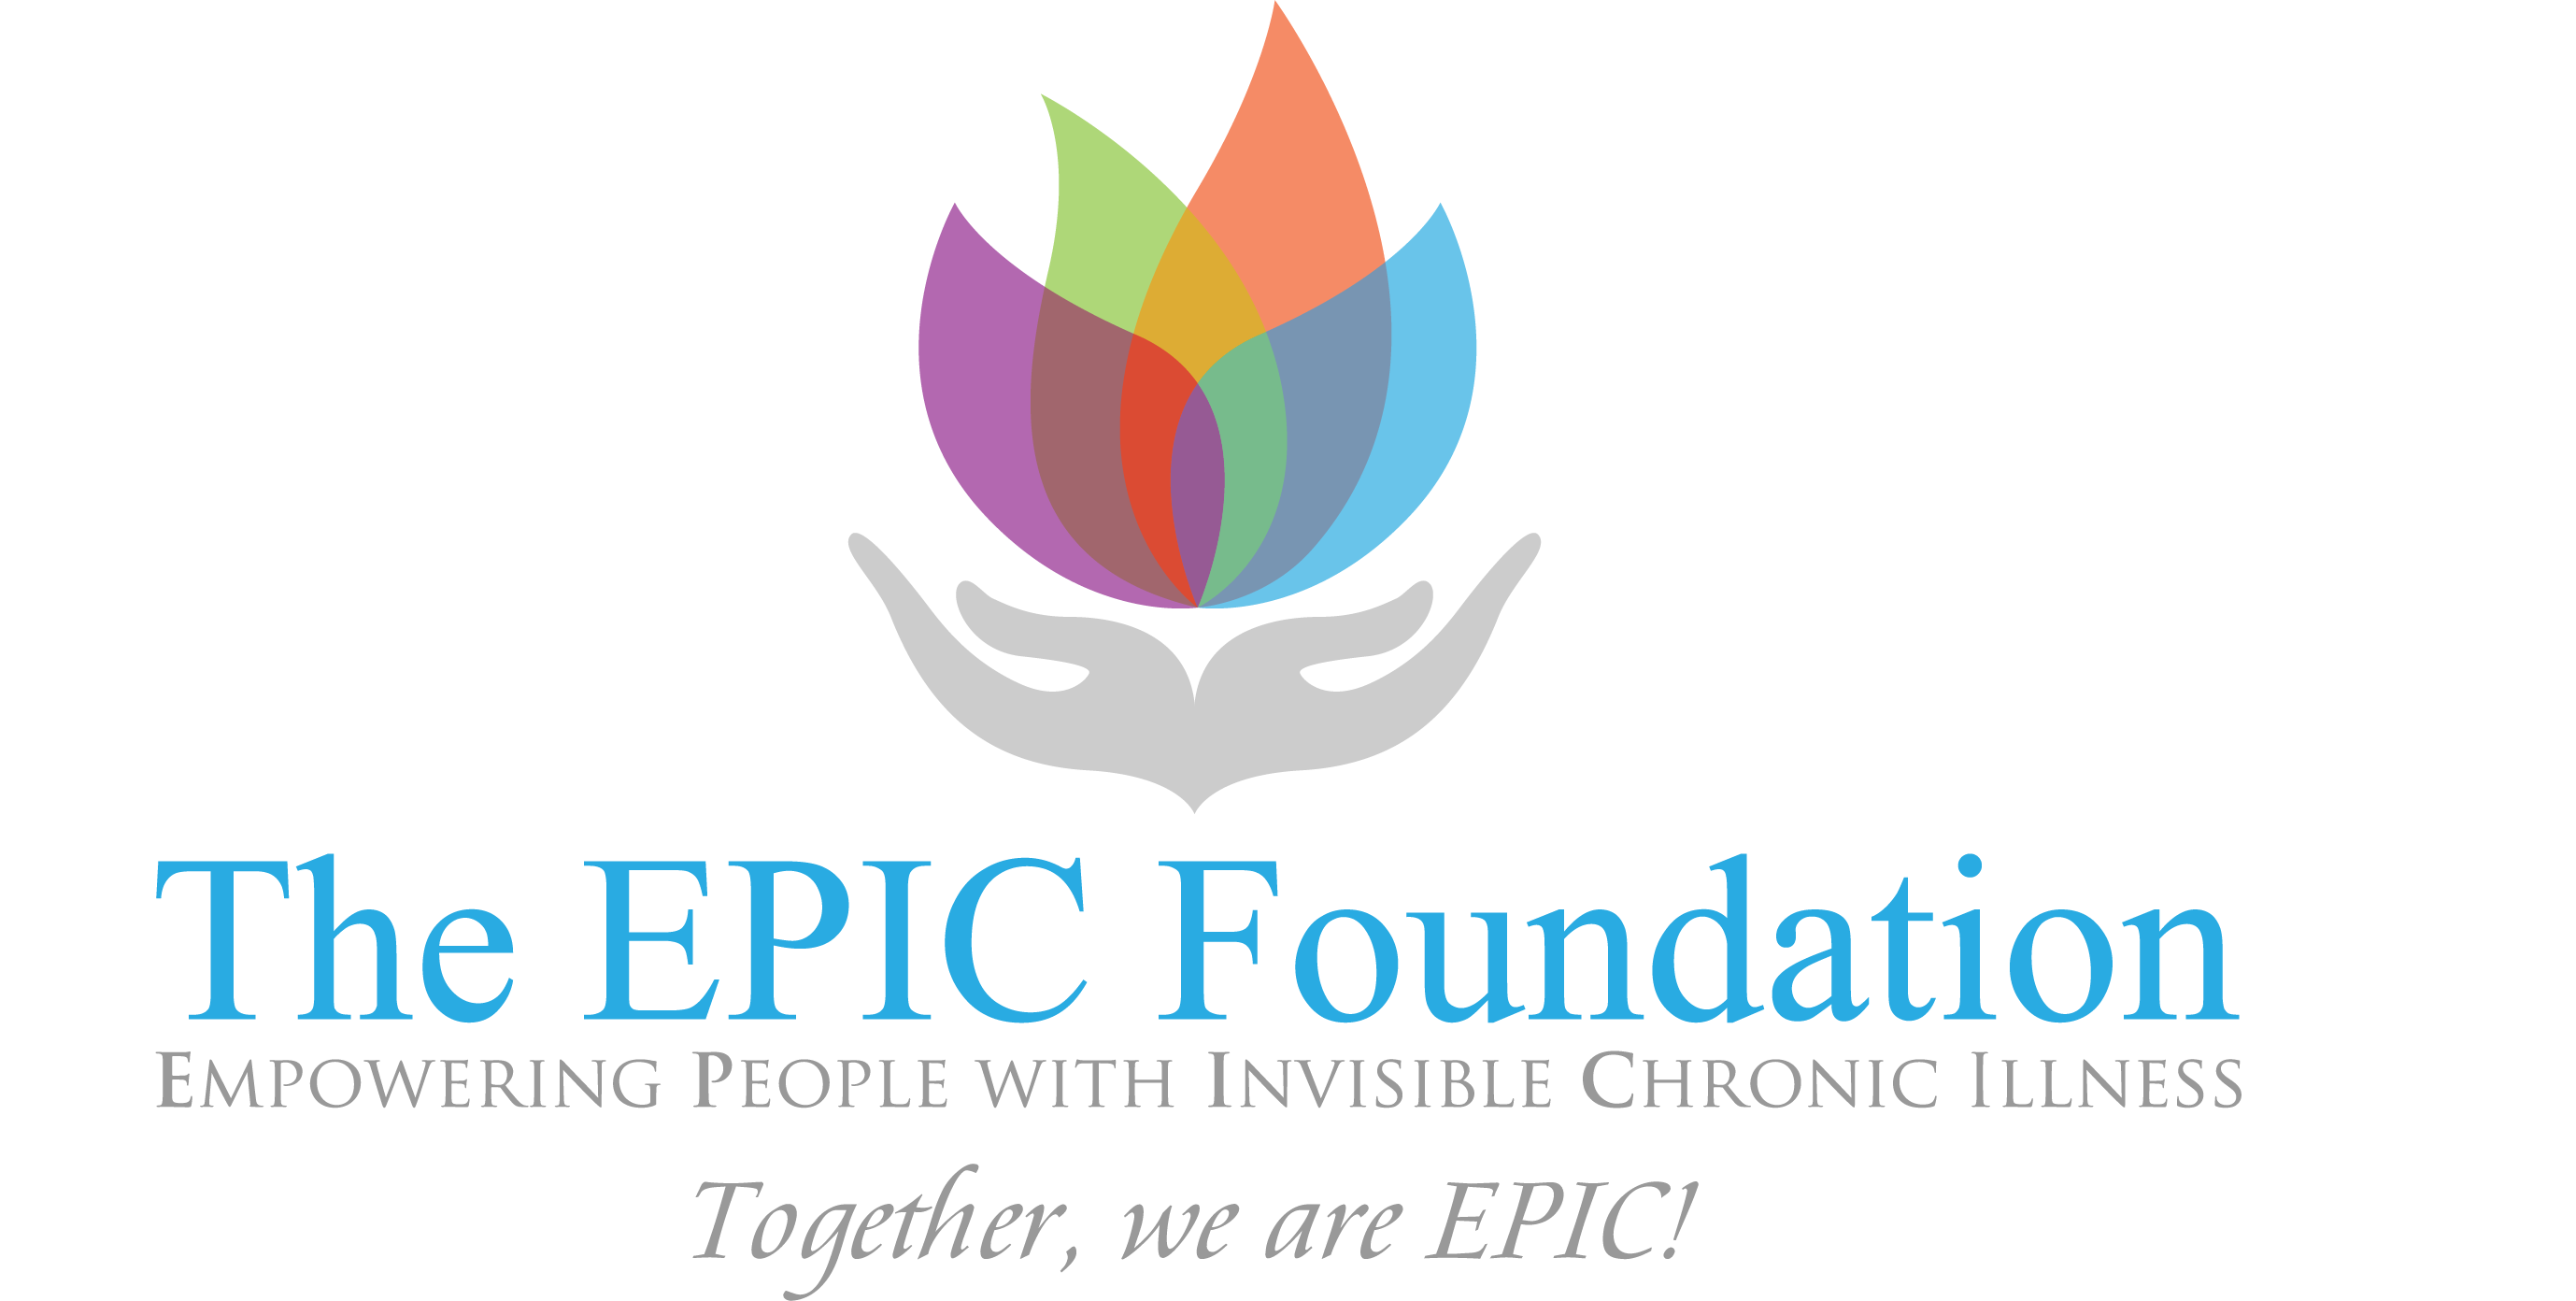 The Epic Foundation - Black Owned